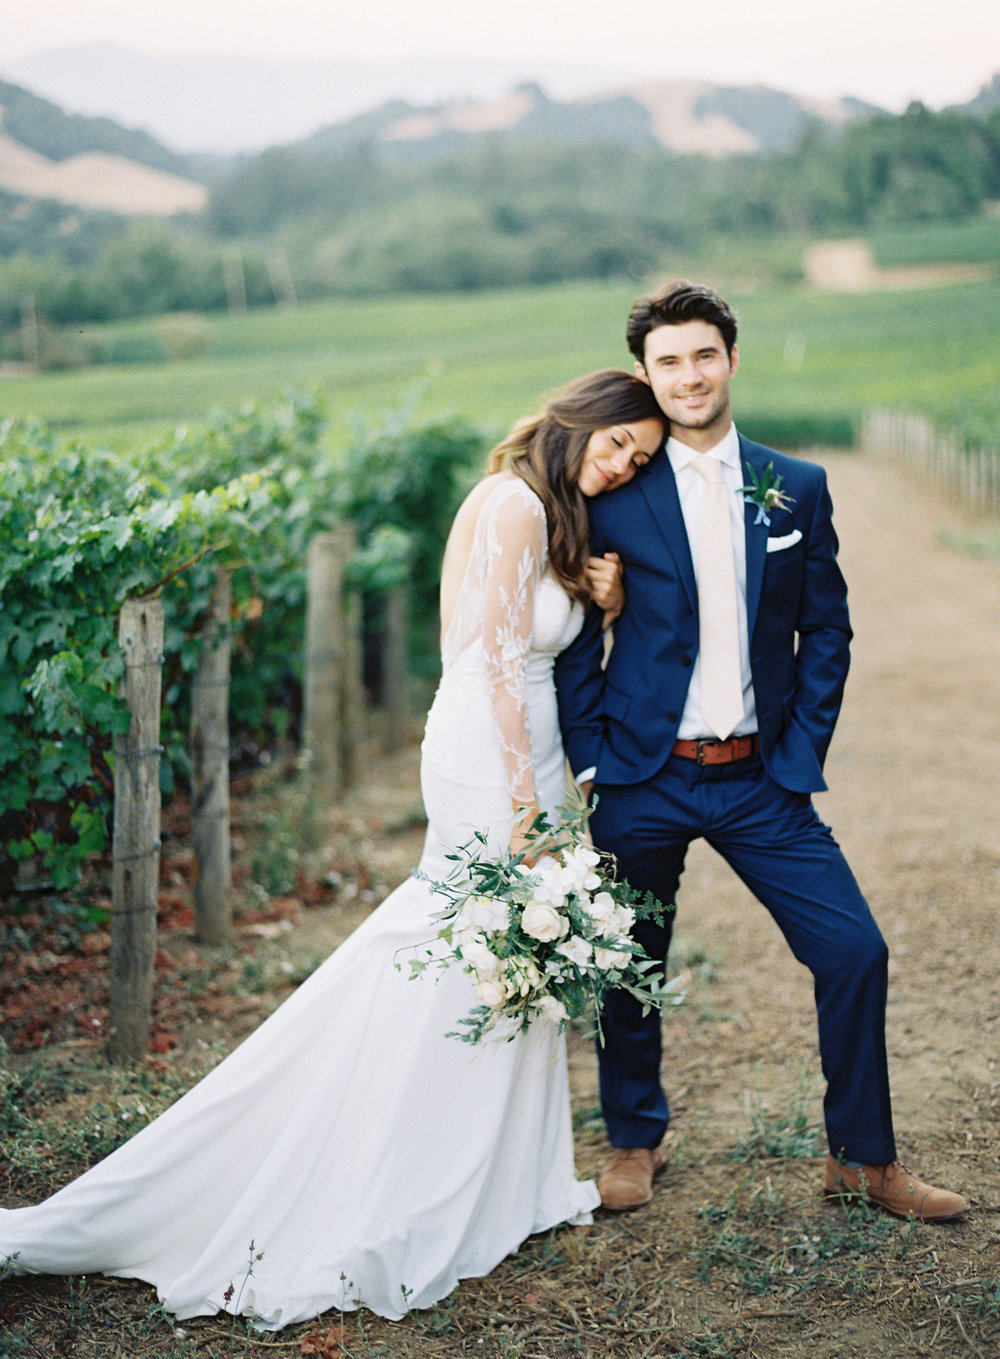 ASHLEY + TOMMY - NAPA VALLEY, CALIFORNIA